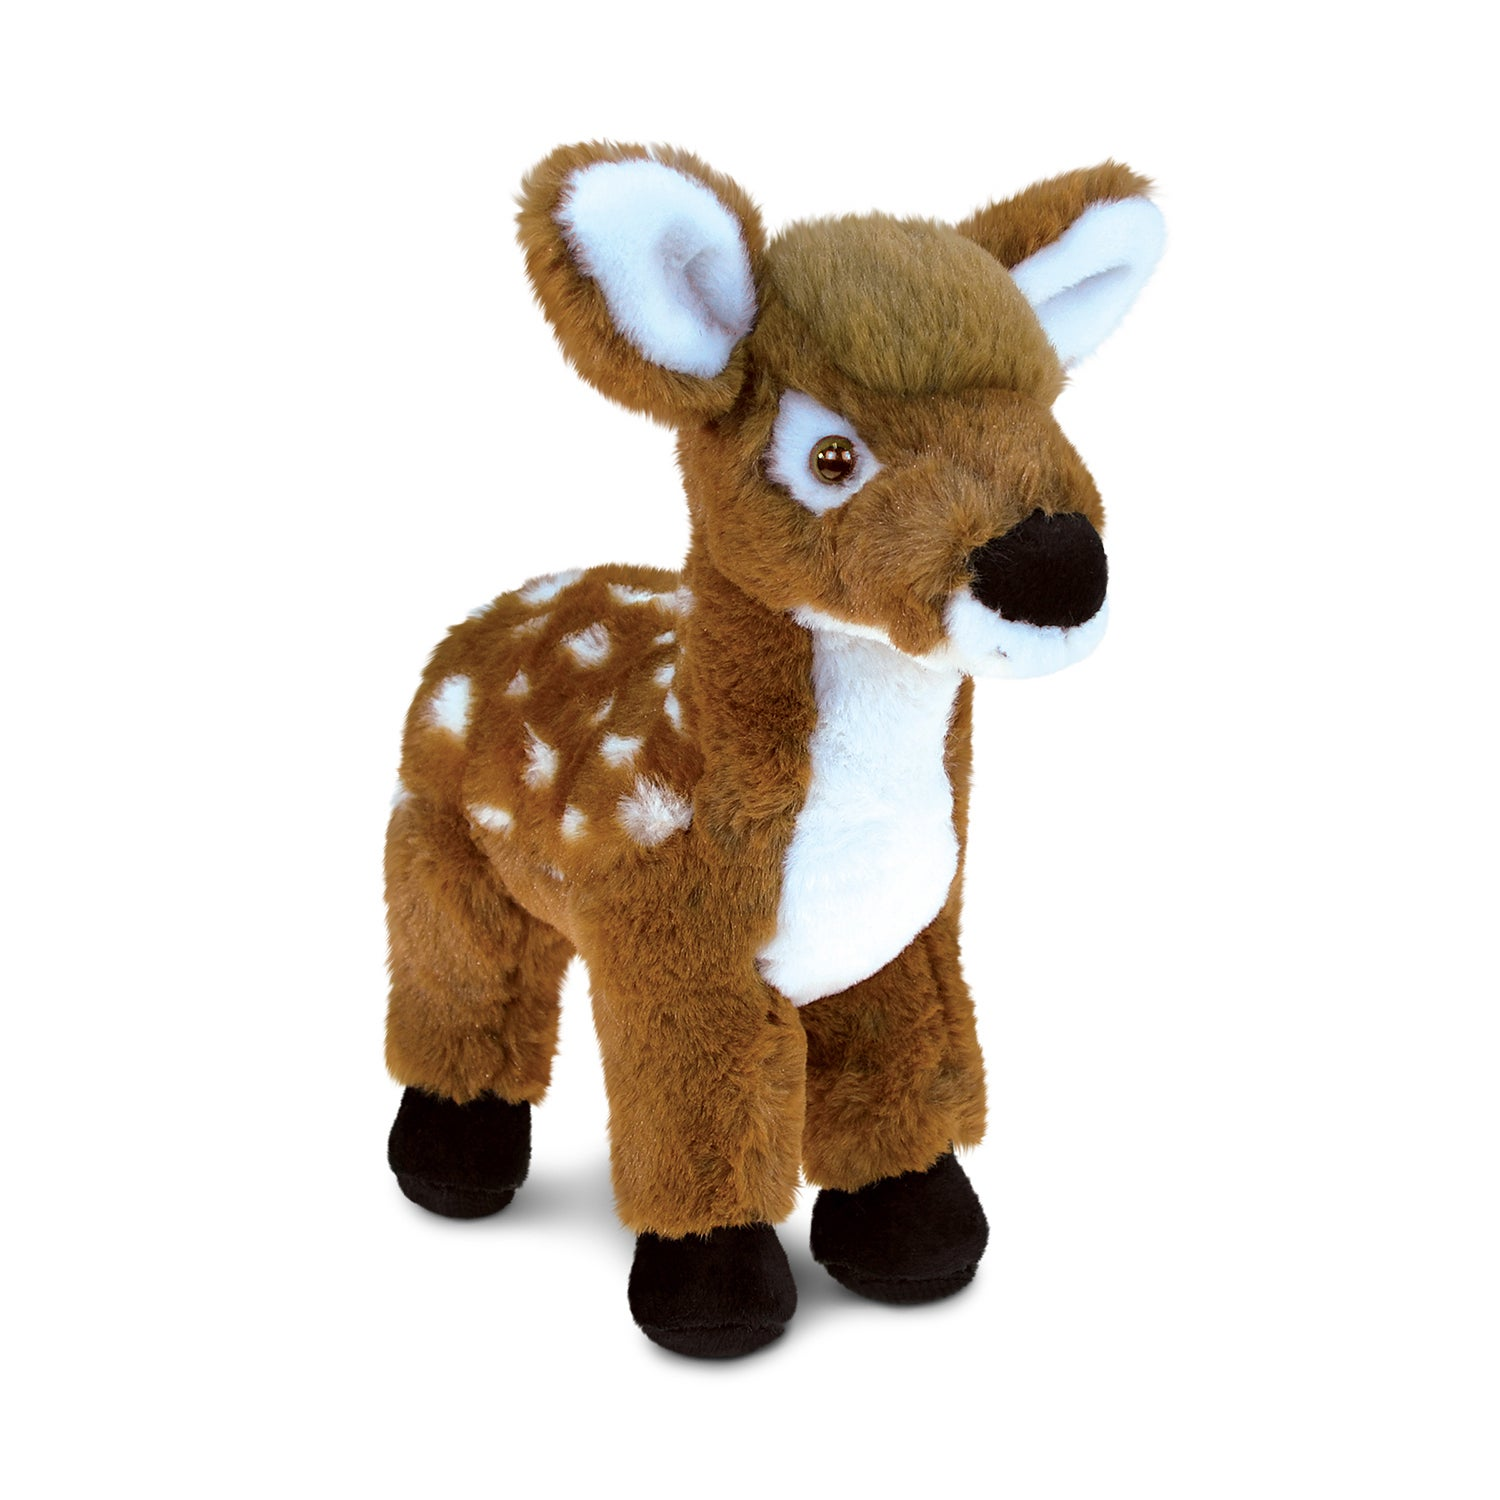 Puzzled Inc. Kids' Standing Deer 8-inch Large Super-soft ...